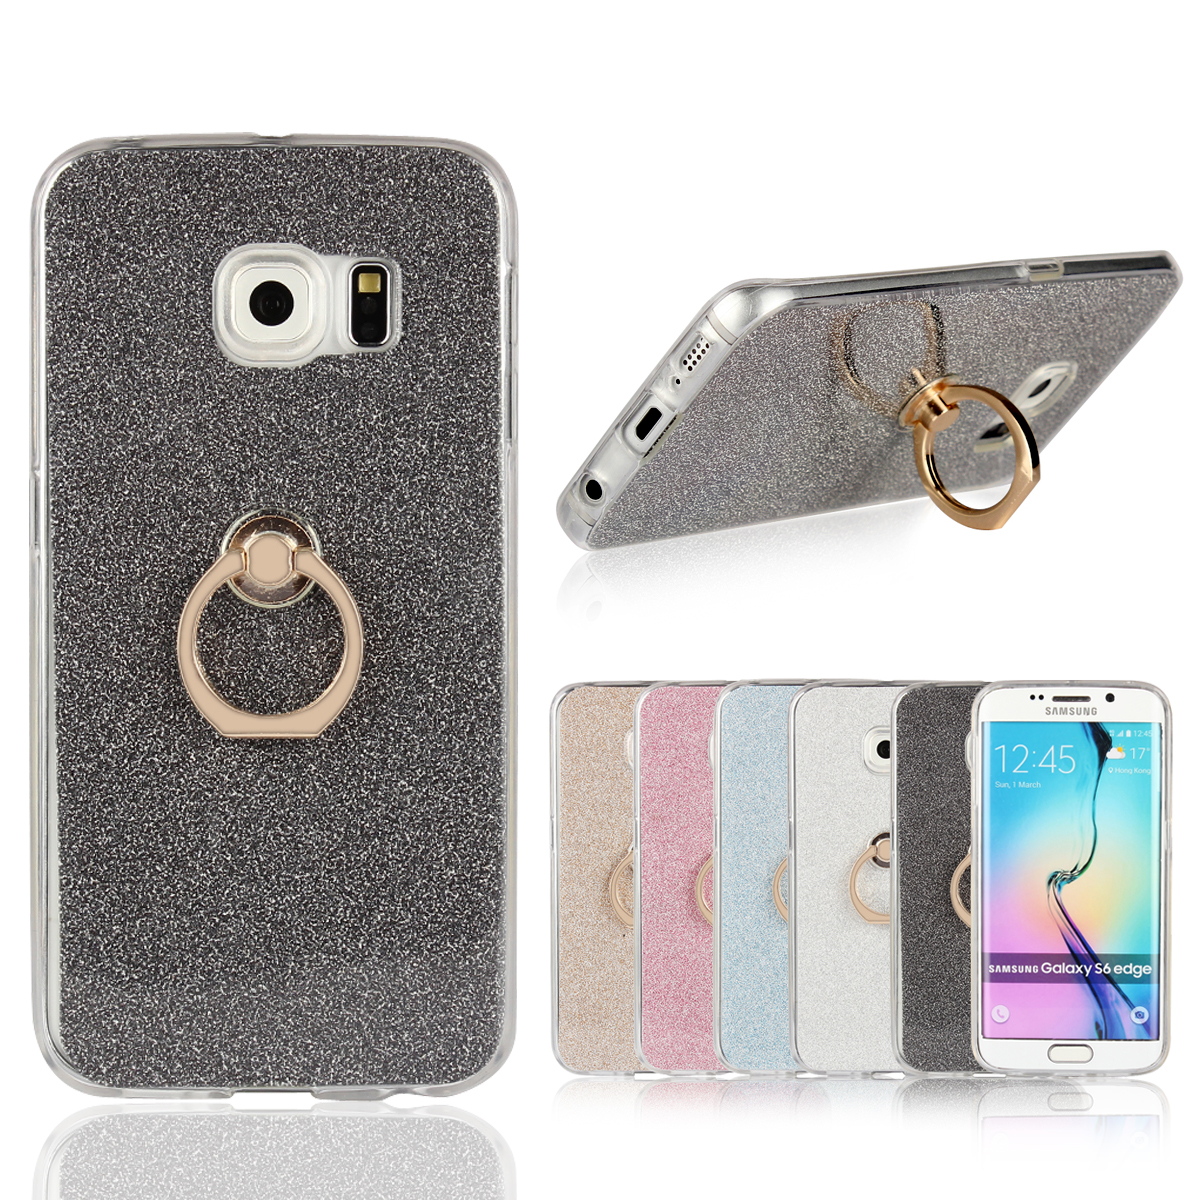 Case for Samsung Galaxy S6 edge Flash powder Case for Samsung S6edge SM-G9250 G925J/L/K/S/Z/T/F/FQ/I/R7 Finger buckle Phone bag